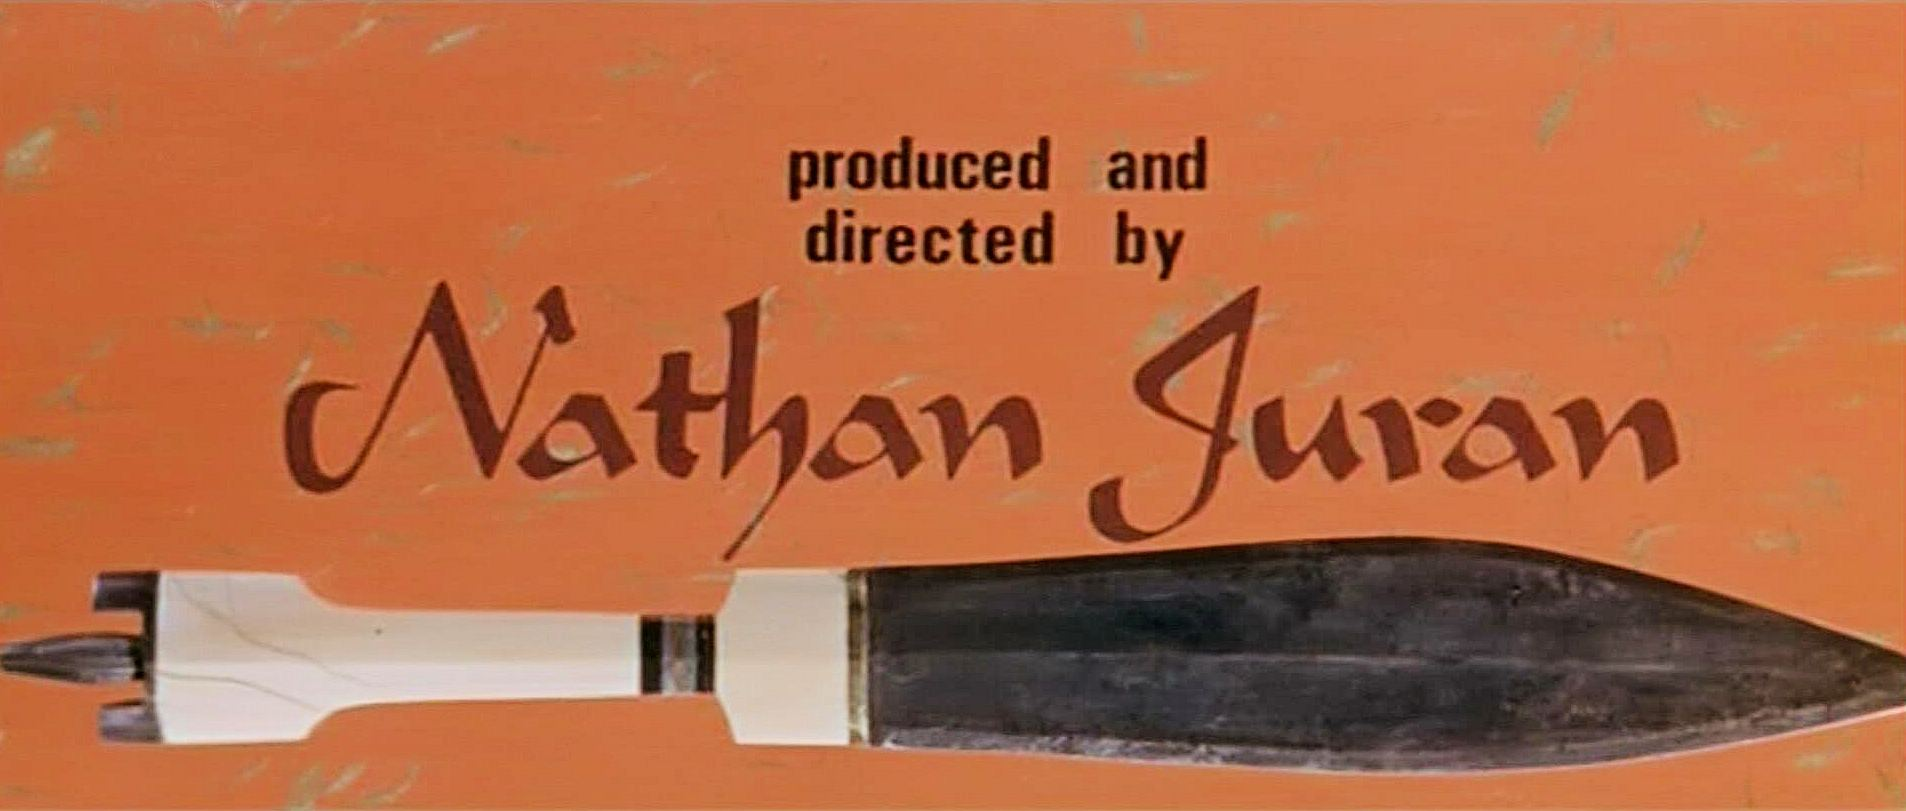 Main title from East of Sudan (1964) (9). Produced and Directed by Nathan Juran